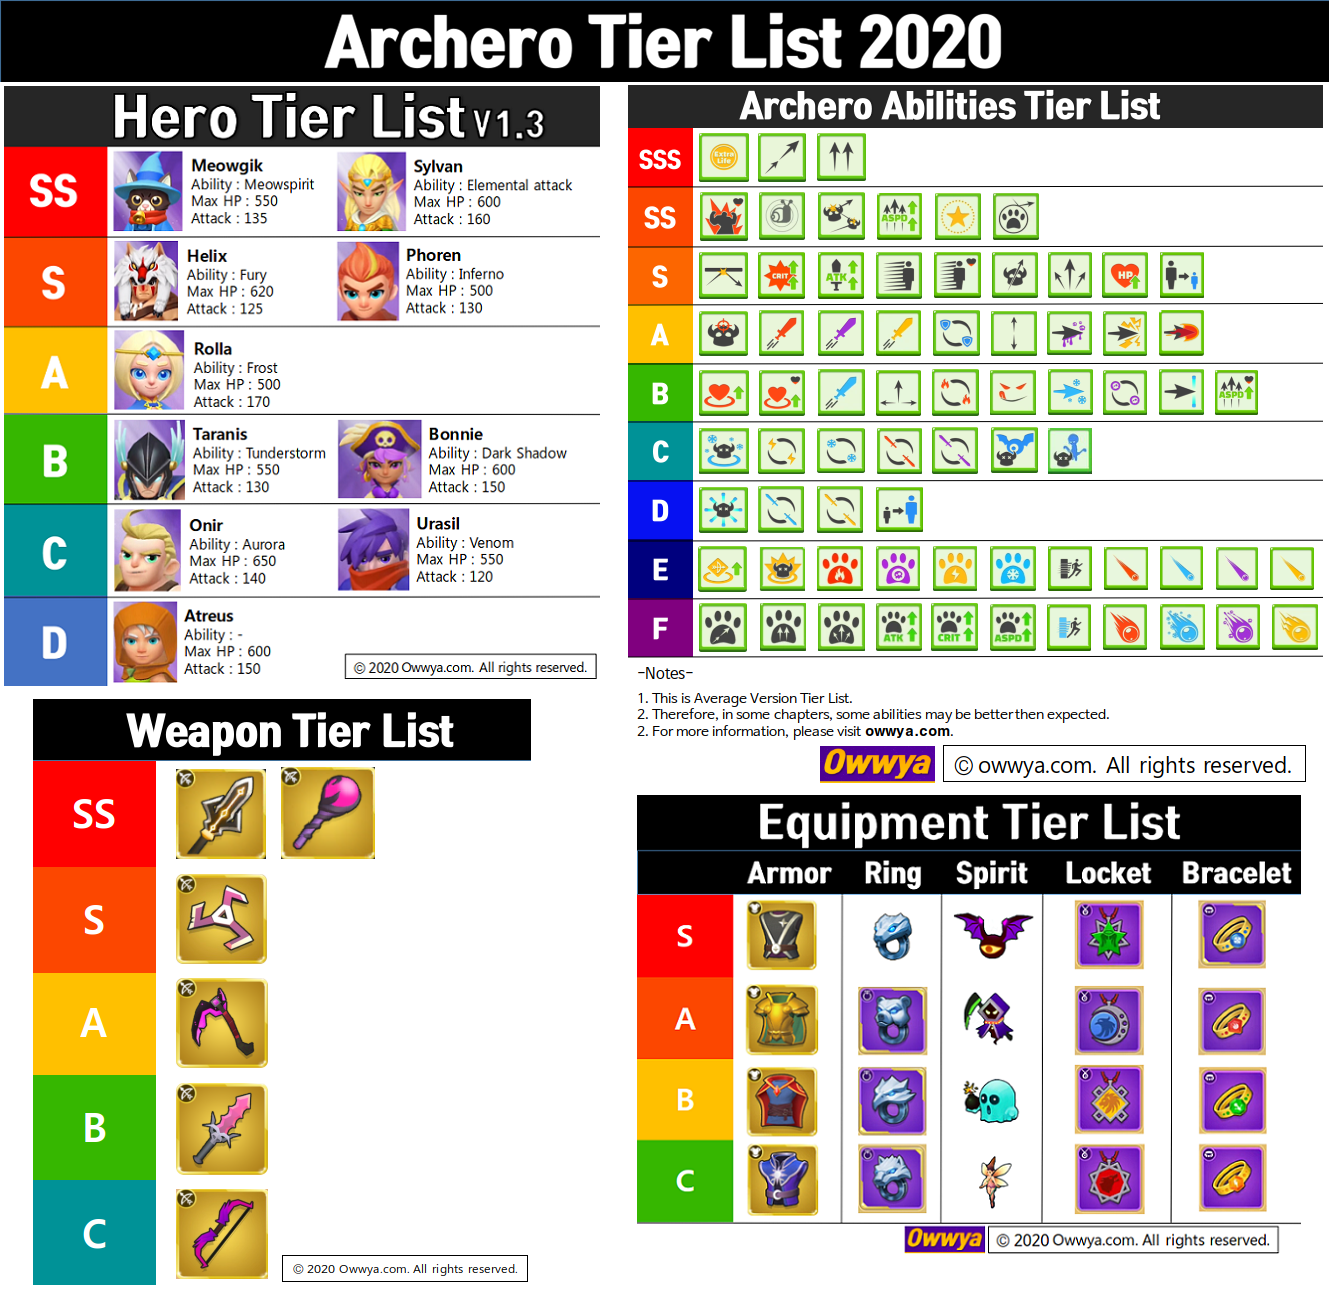 https://owwya.com/wp-content/uploads/2020/01/Archero-Tier-List-2020-v1.0.png